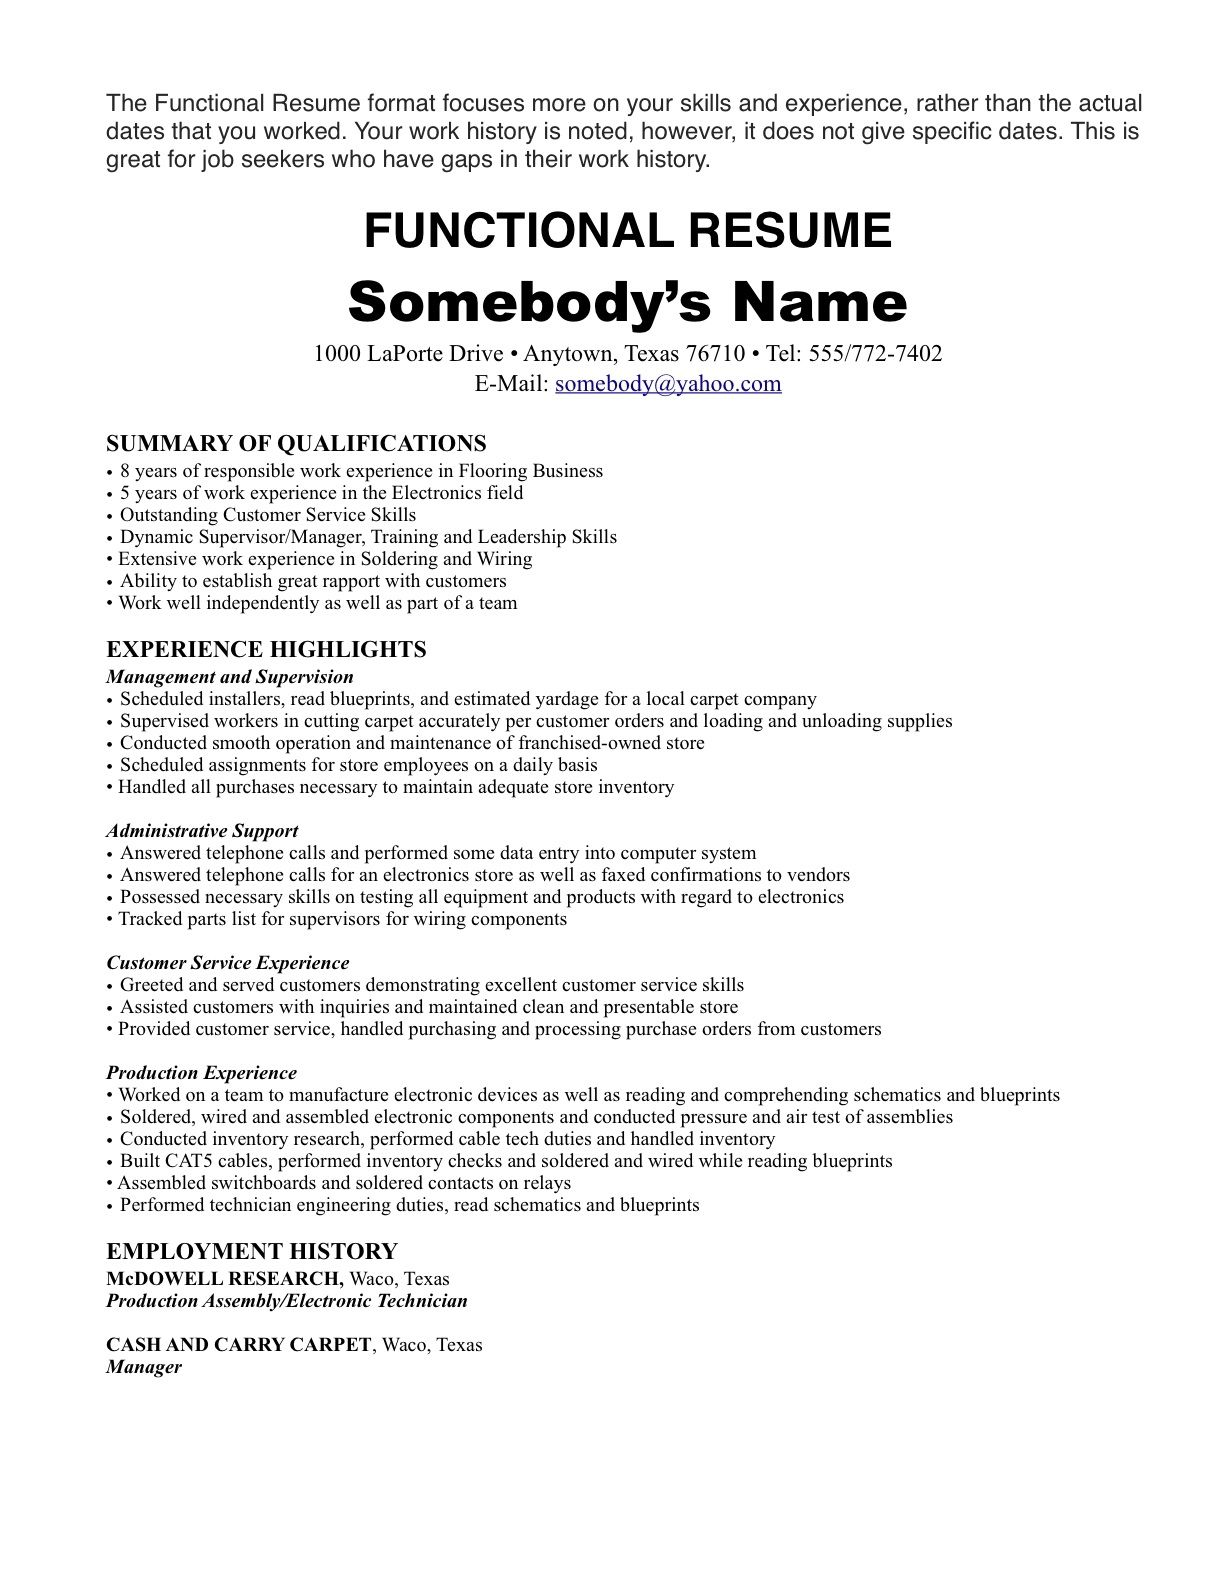 resume format one job templates template for history caretaker skills new professional Resume Resume Template For One Job History